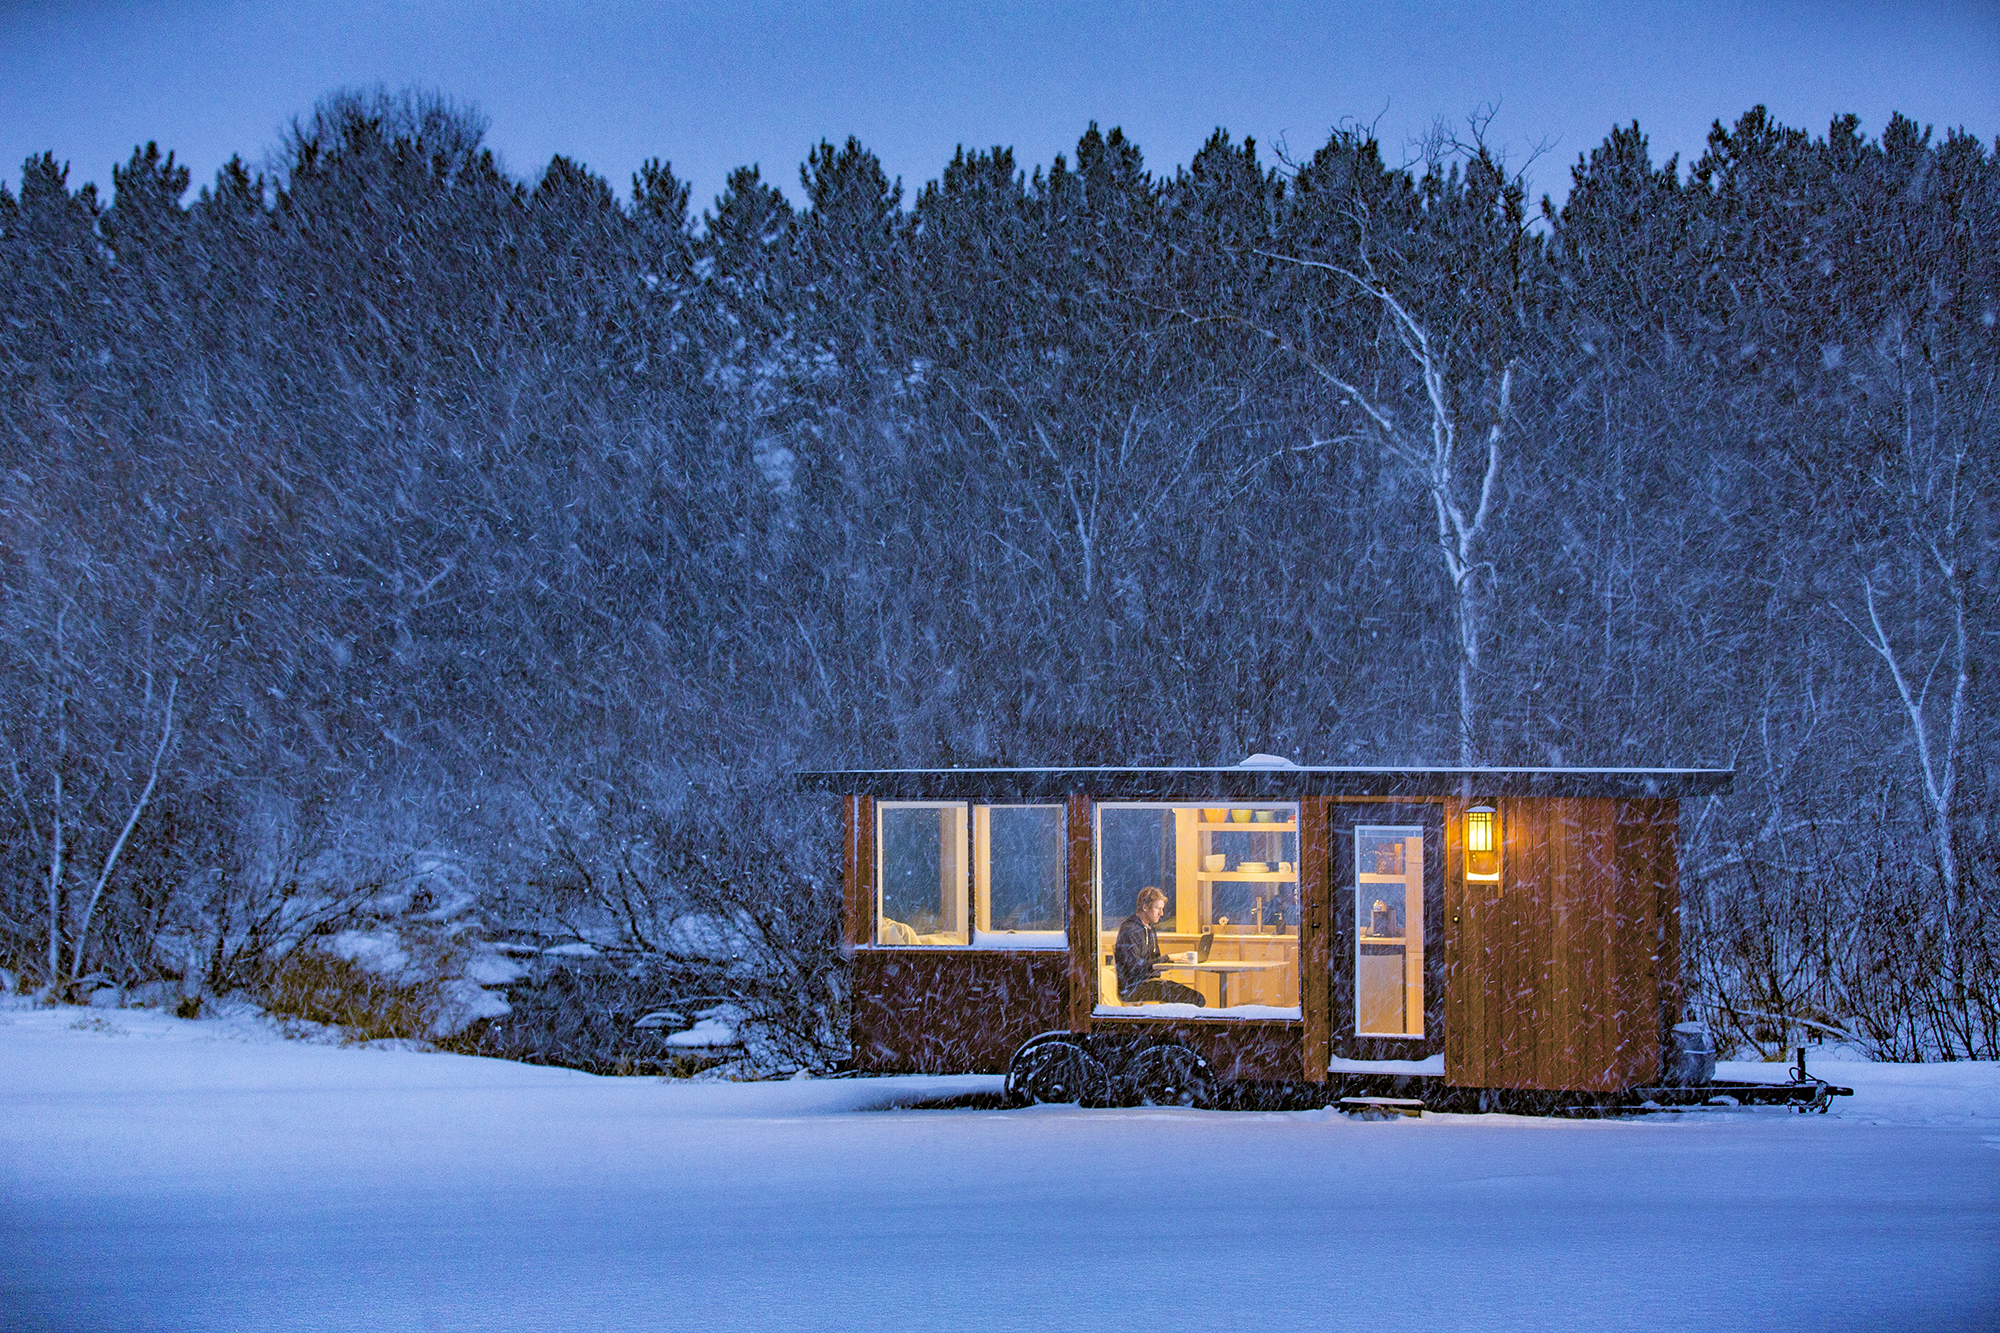 Tiny houses in 2016: more tricked-out and eco-friendly